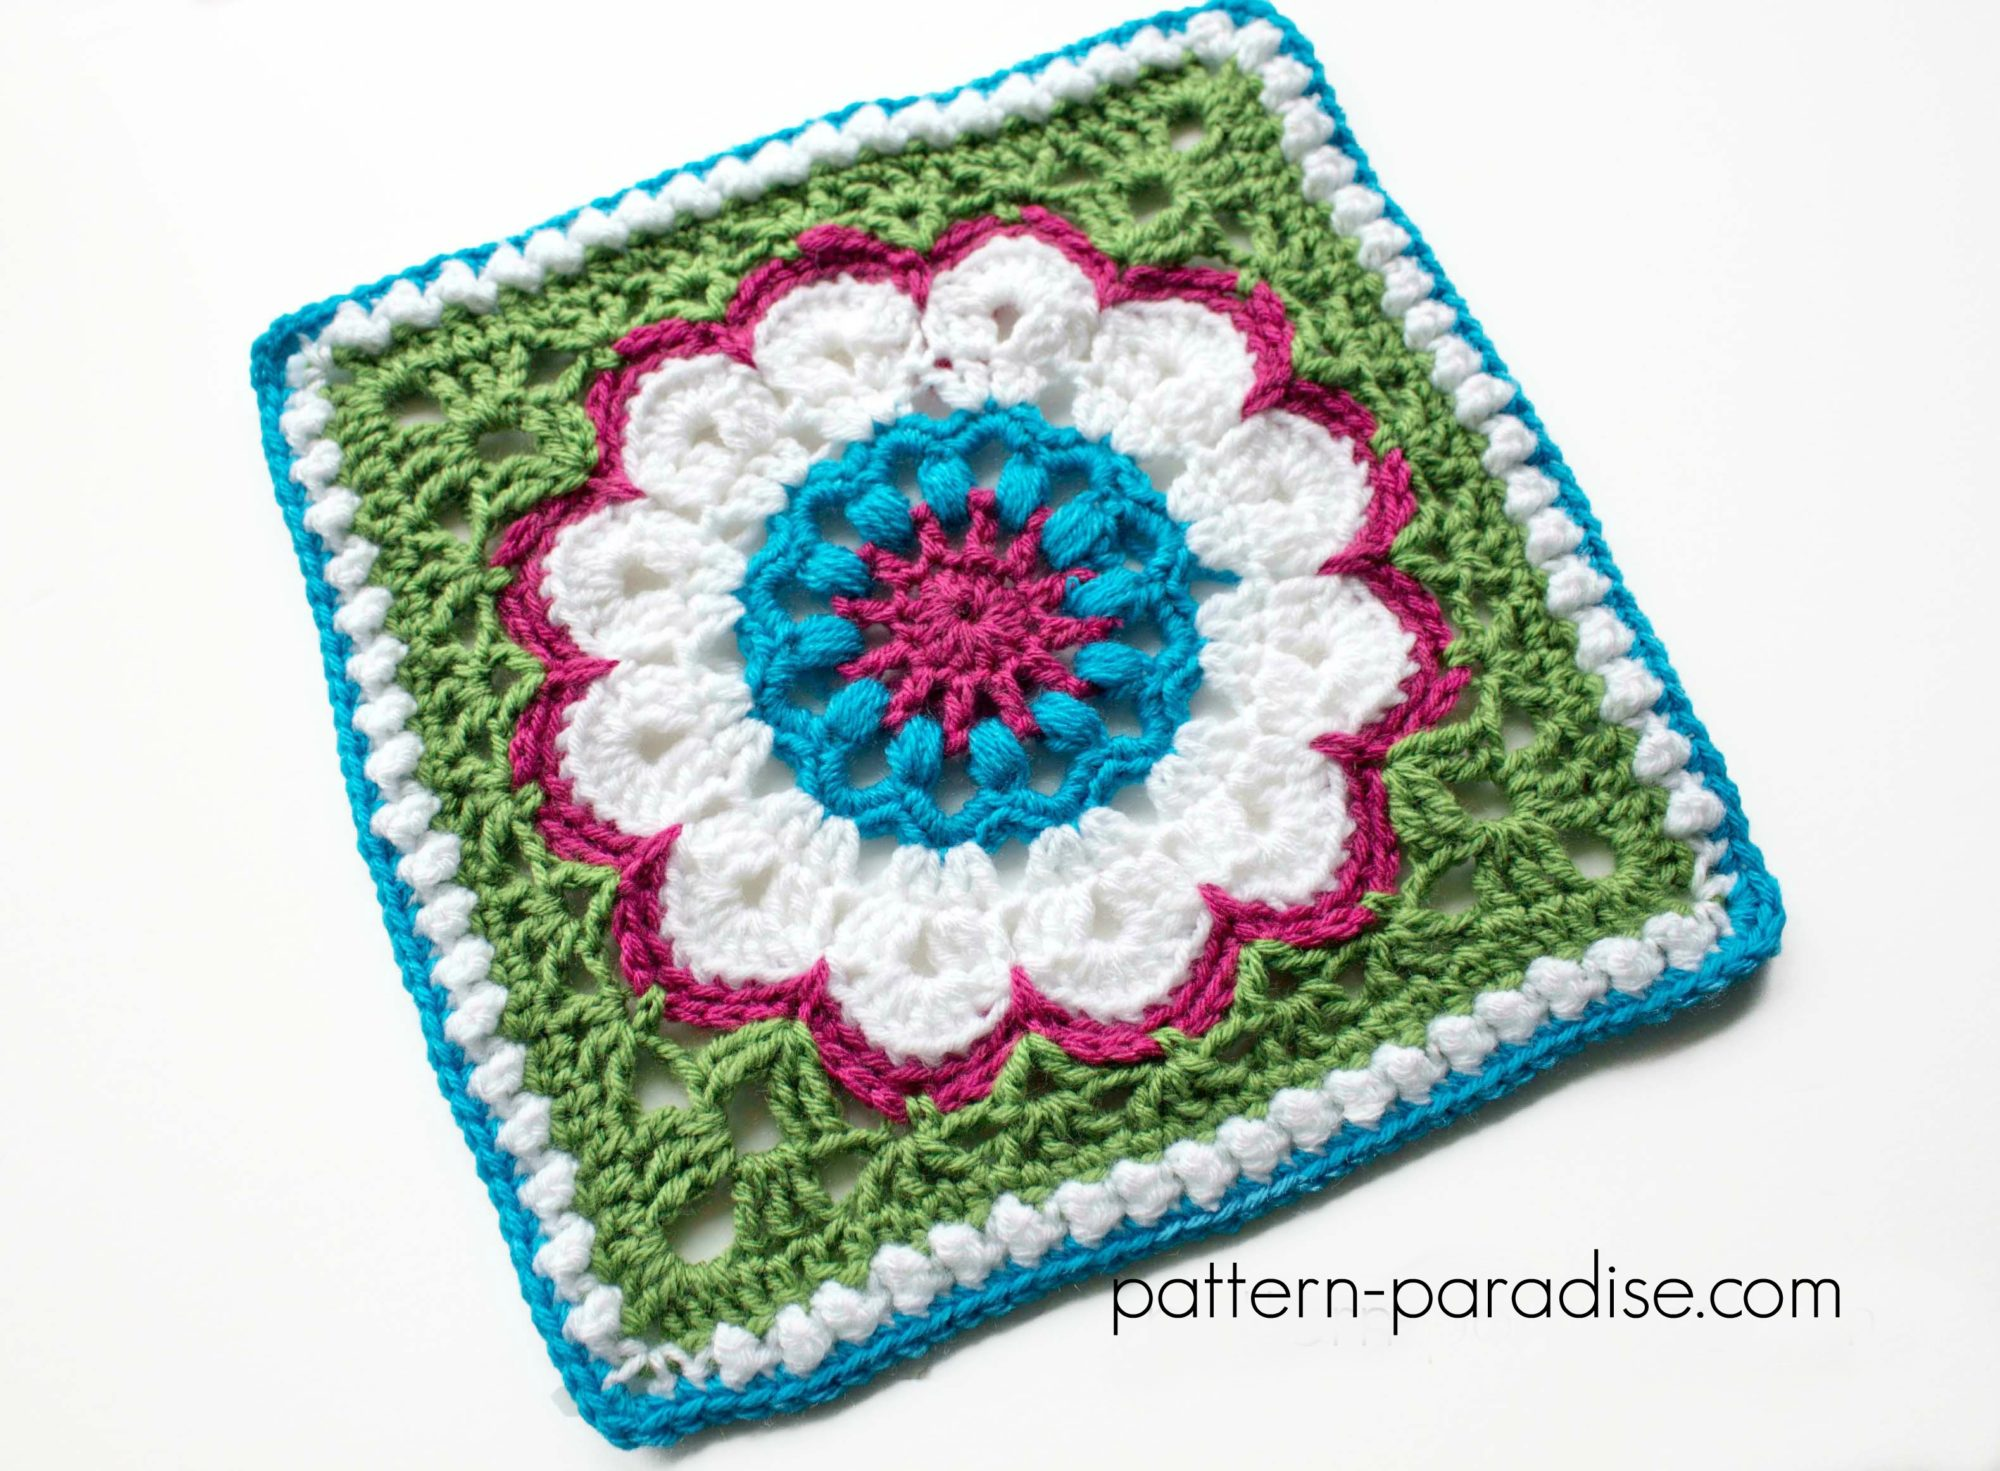 Free Crochet Pattern: Dahlia Afghan Square | Pattern Paradise